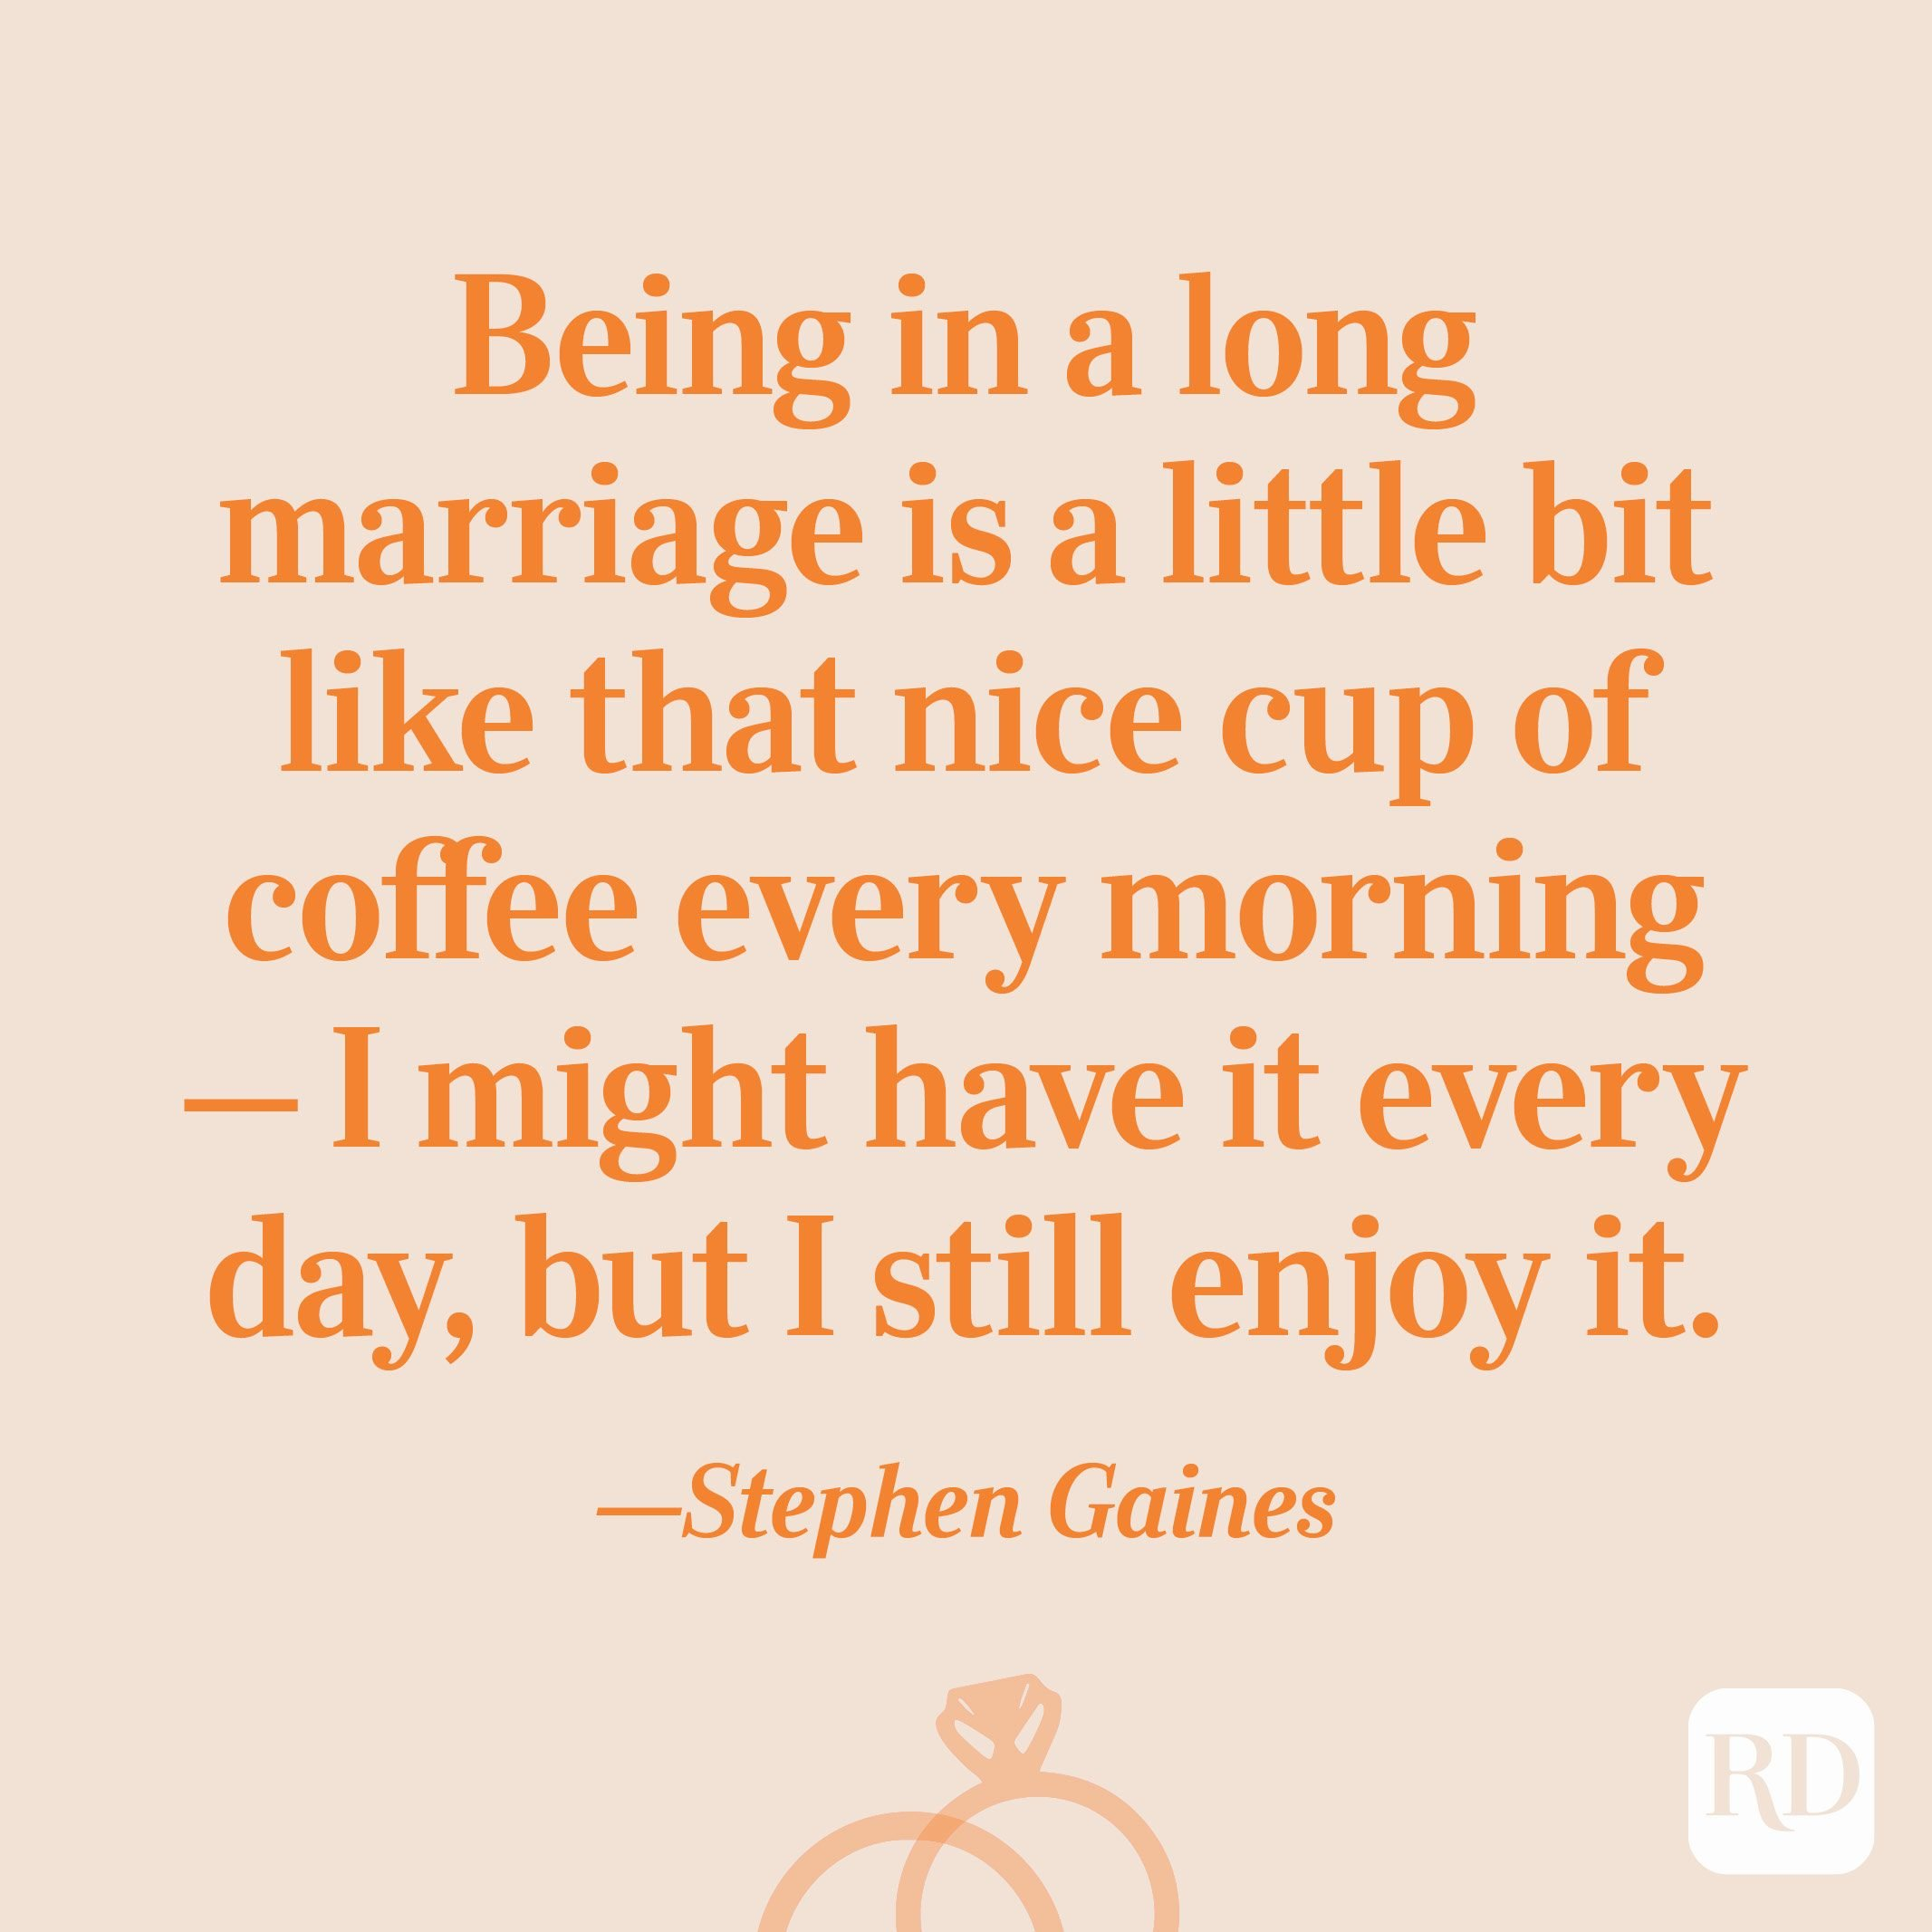 """Being in a long marriage is a little bit like that nice cup of coffee every morning – I might have it every day, but I still enjoy it.""—Stephen Gaines"